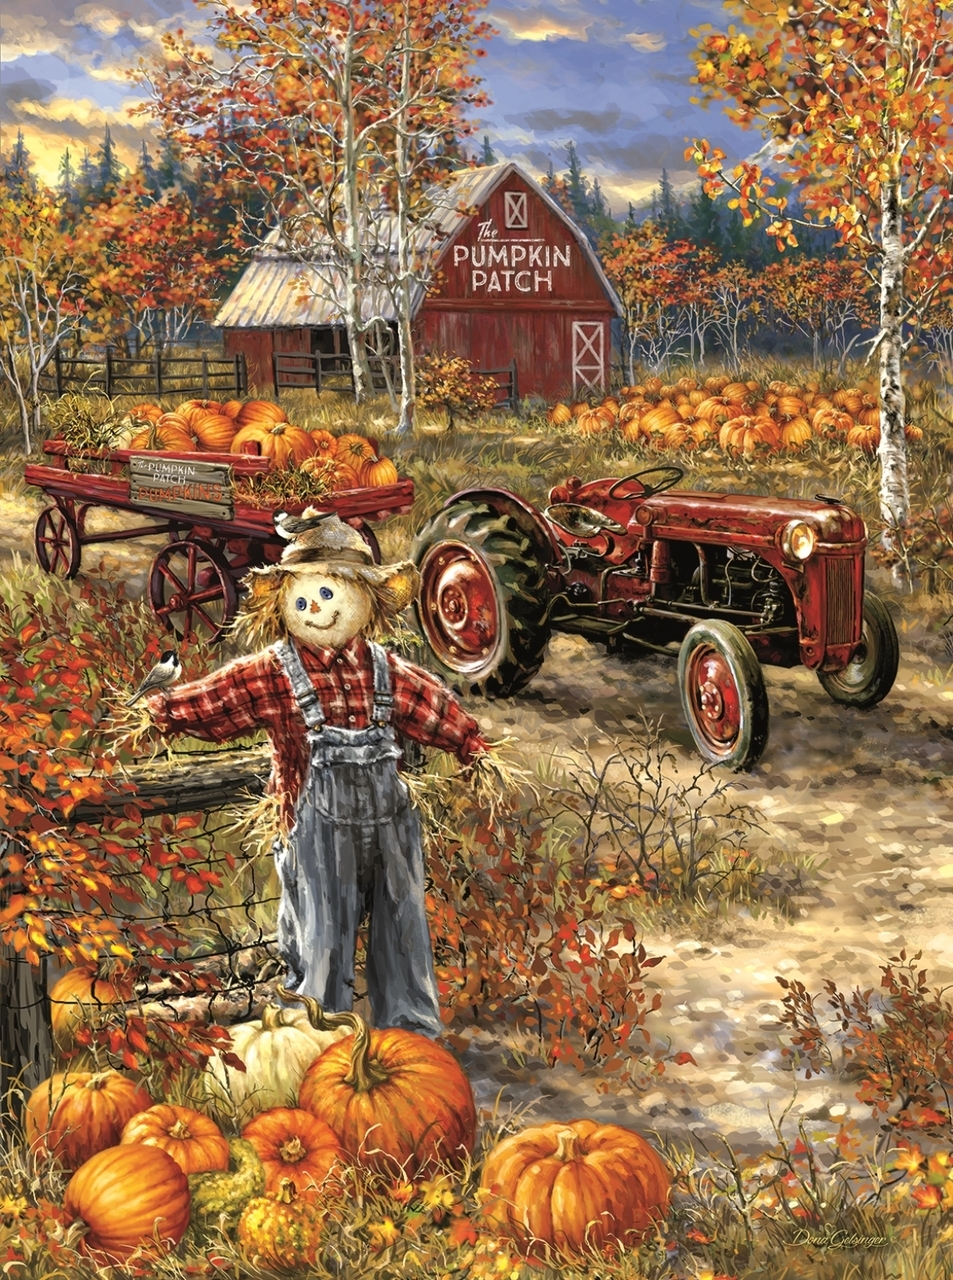 sunsout-dona-gelsinger-the-pumpkin-patch-farm-1000-teile-puzzle-sunsout-57144